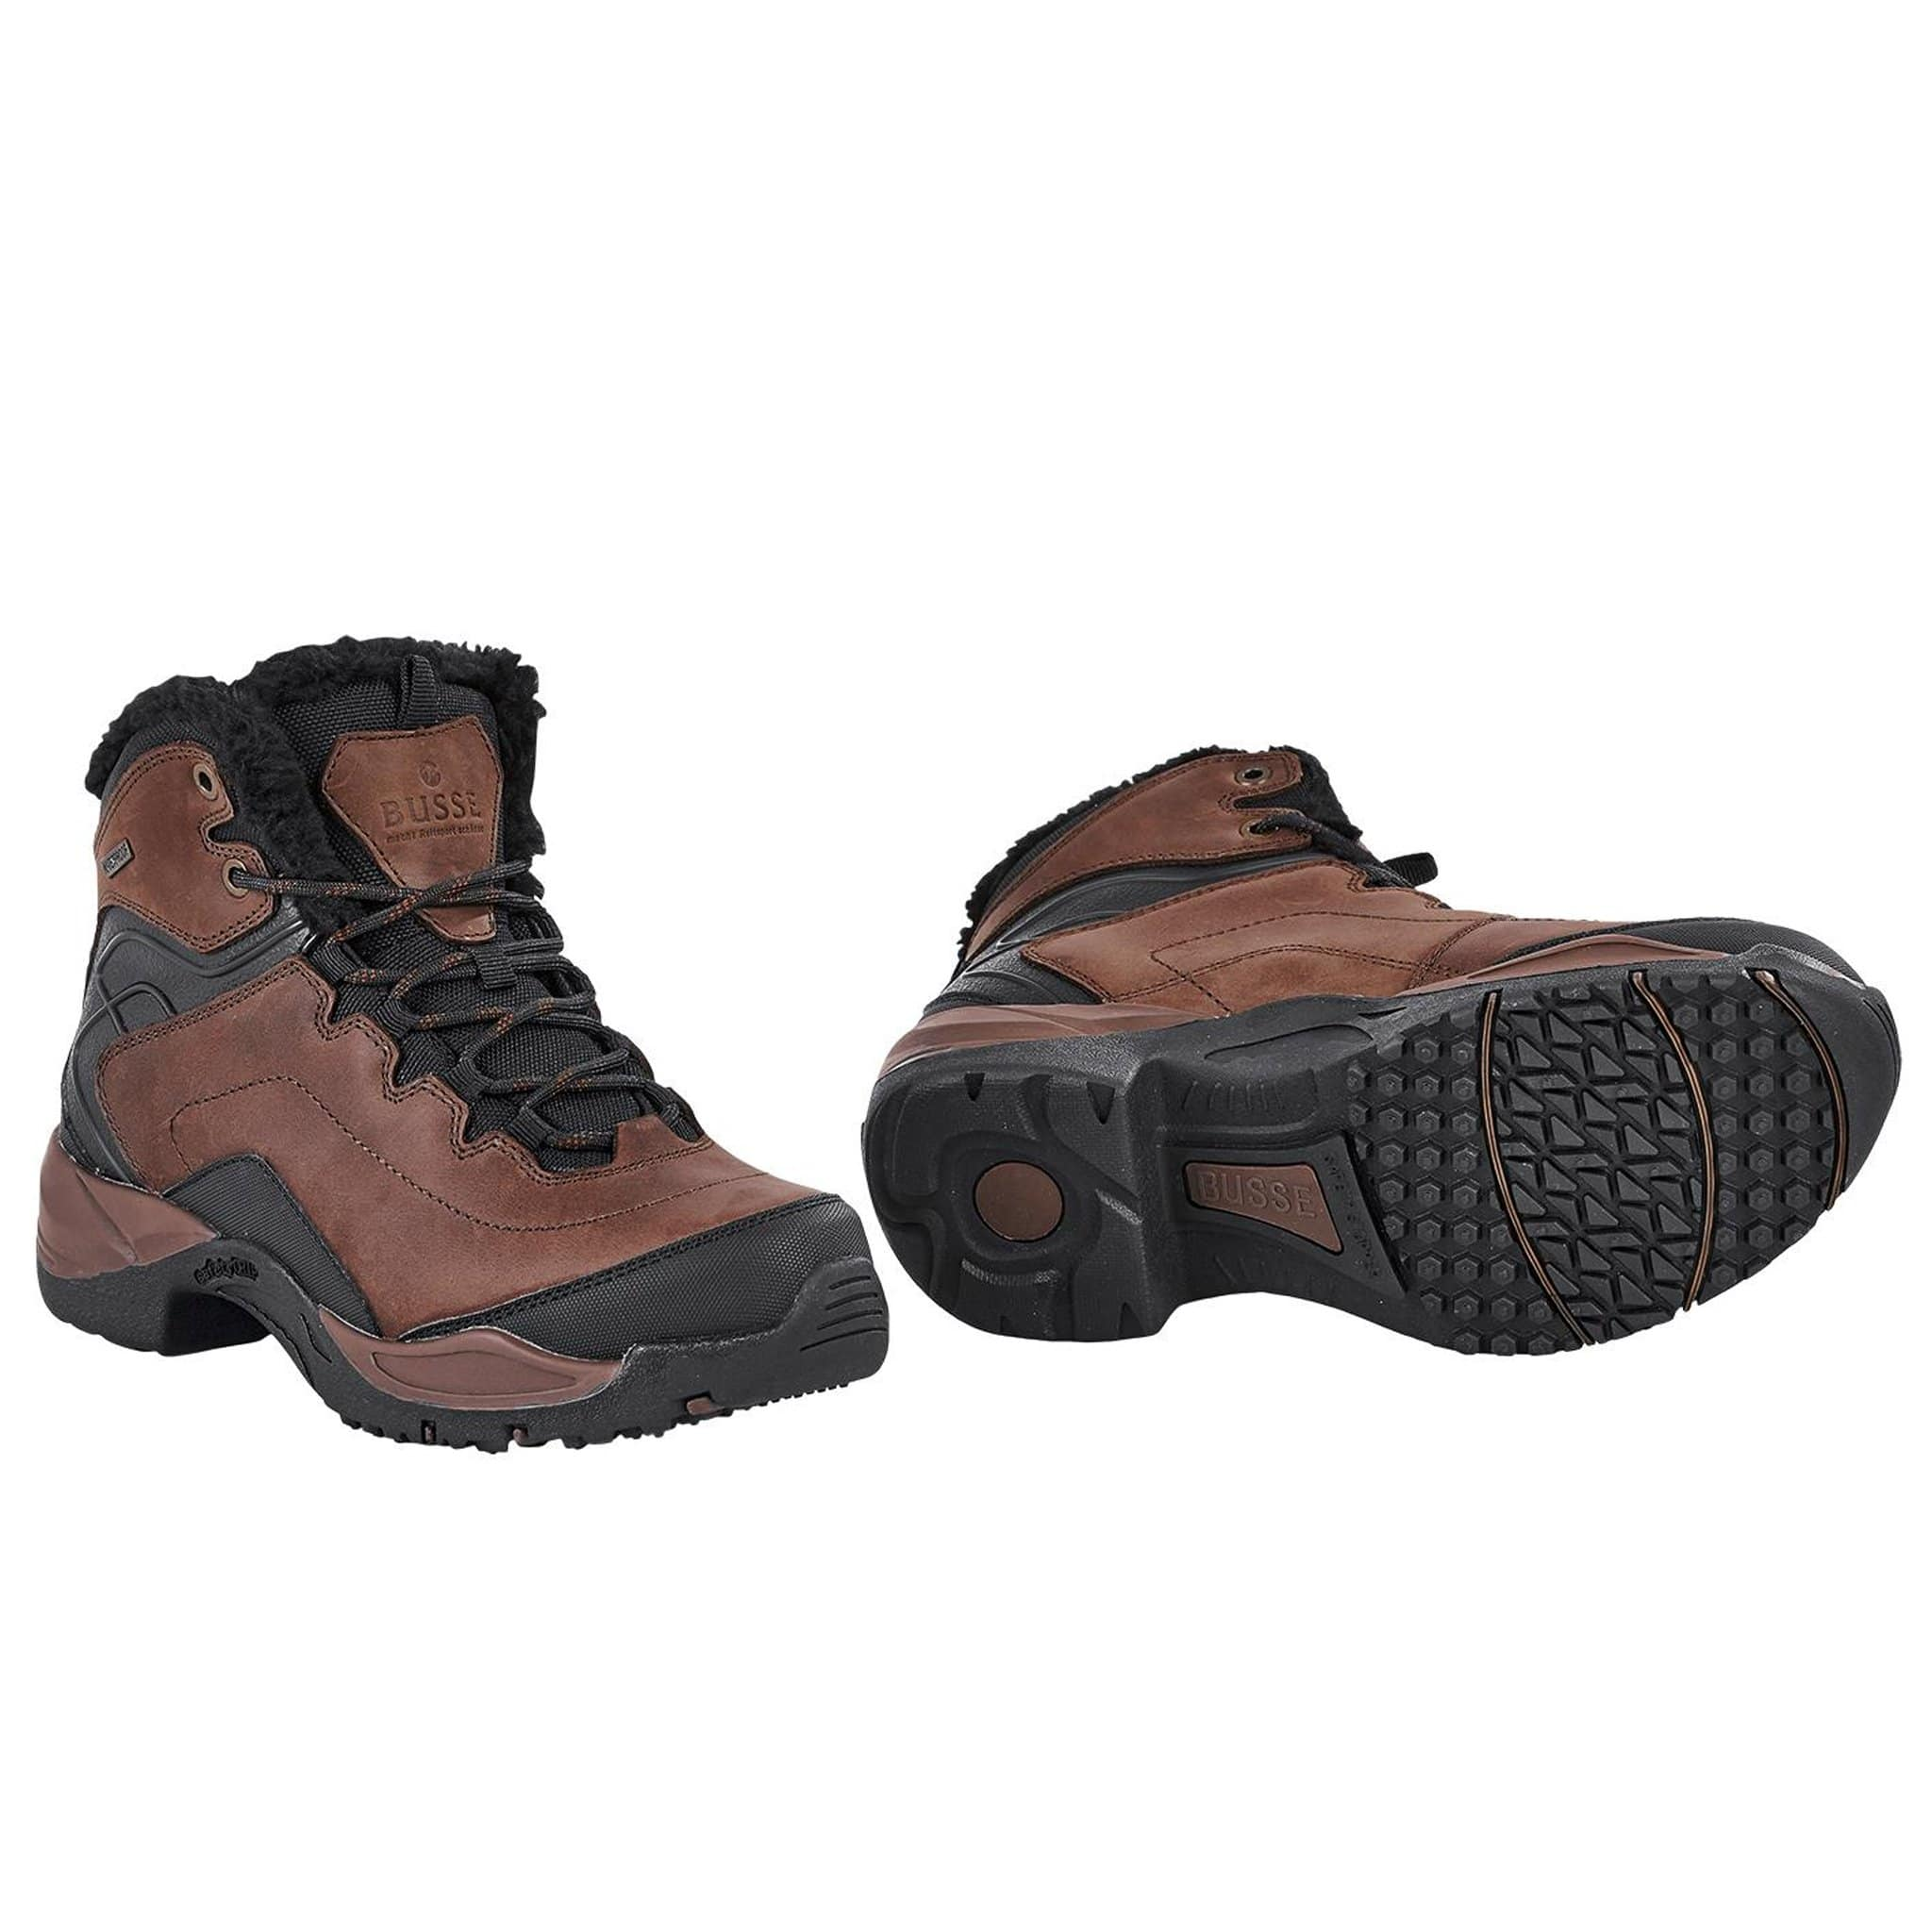 Busse Winter Boots 727551.